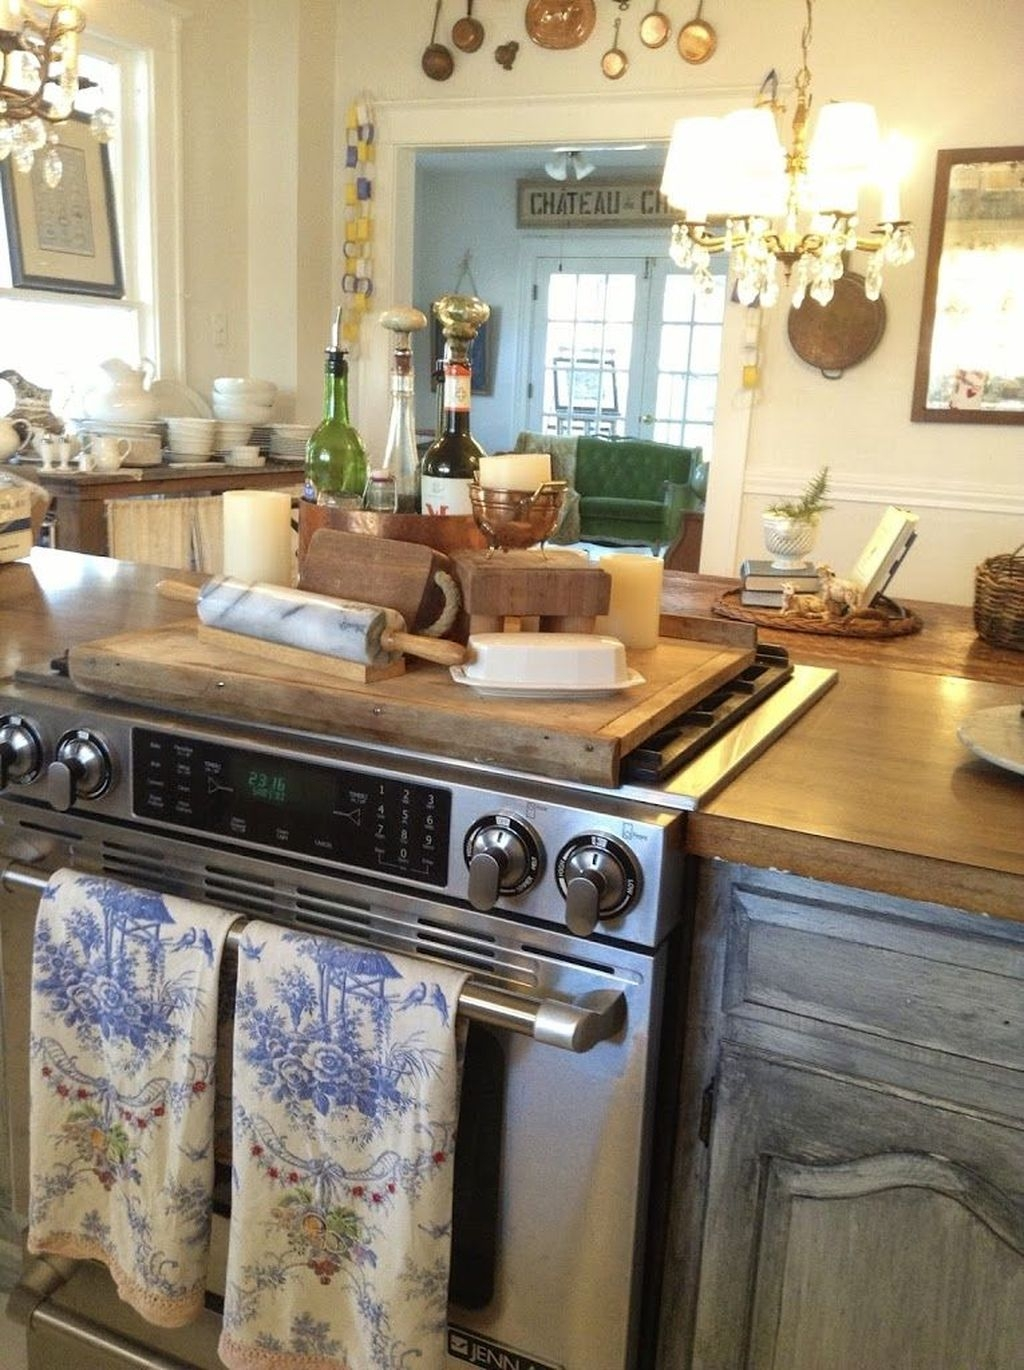 The Best French Country Style Kitchen Decor Ideas 31